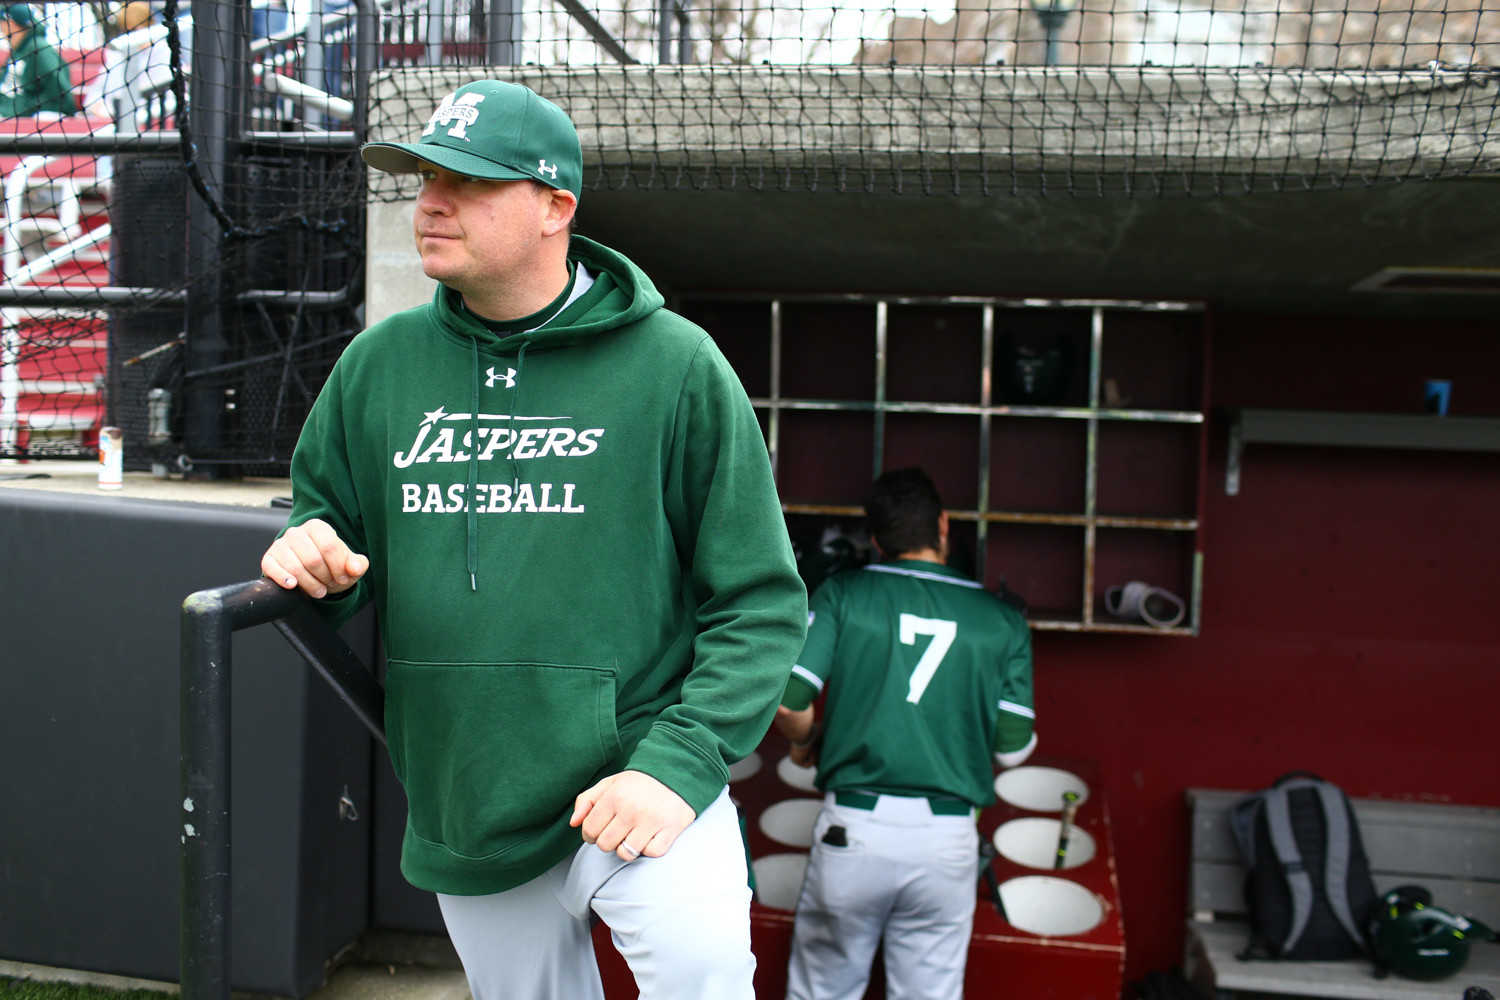 After five seasons at MAAC-rival Fairfield, Mike Cole has returned to Manhattan College to turn around a once-dominant baseball program.